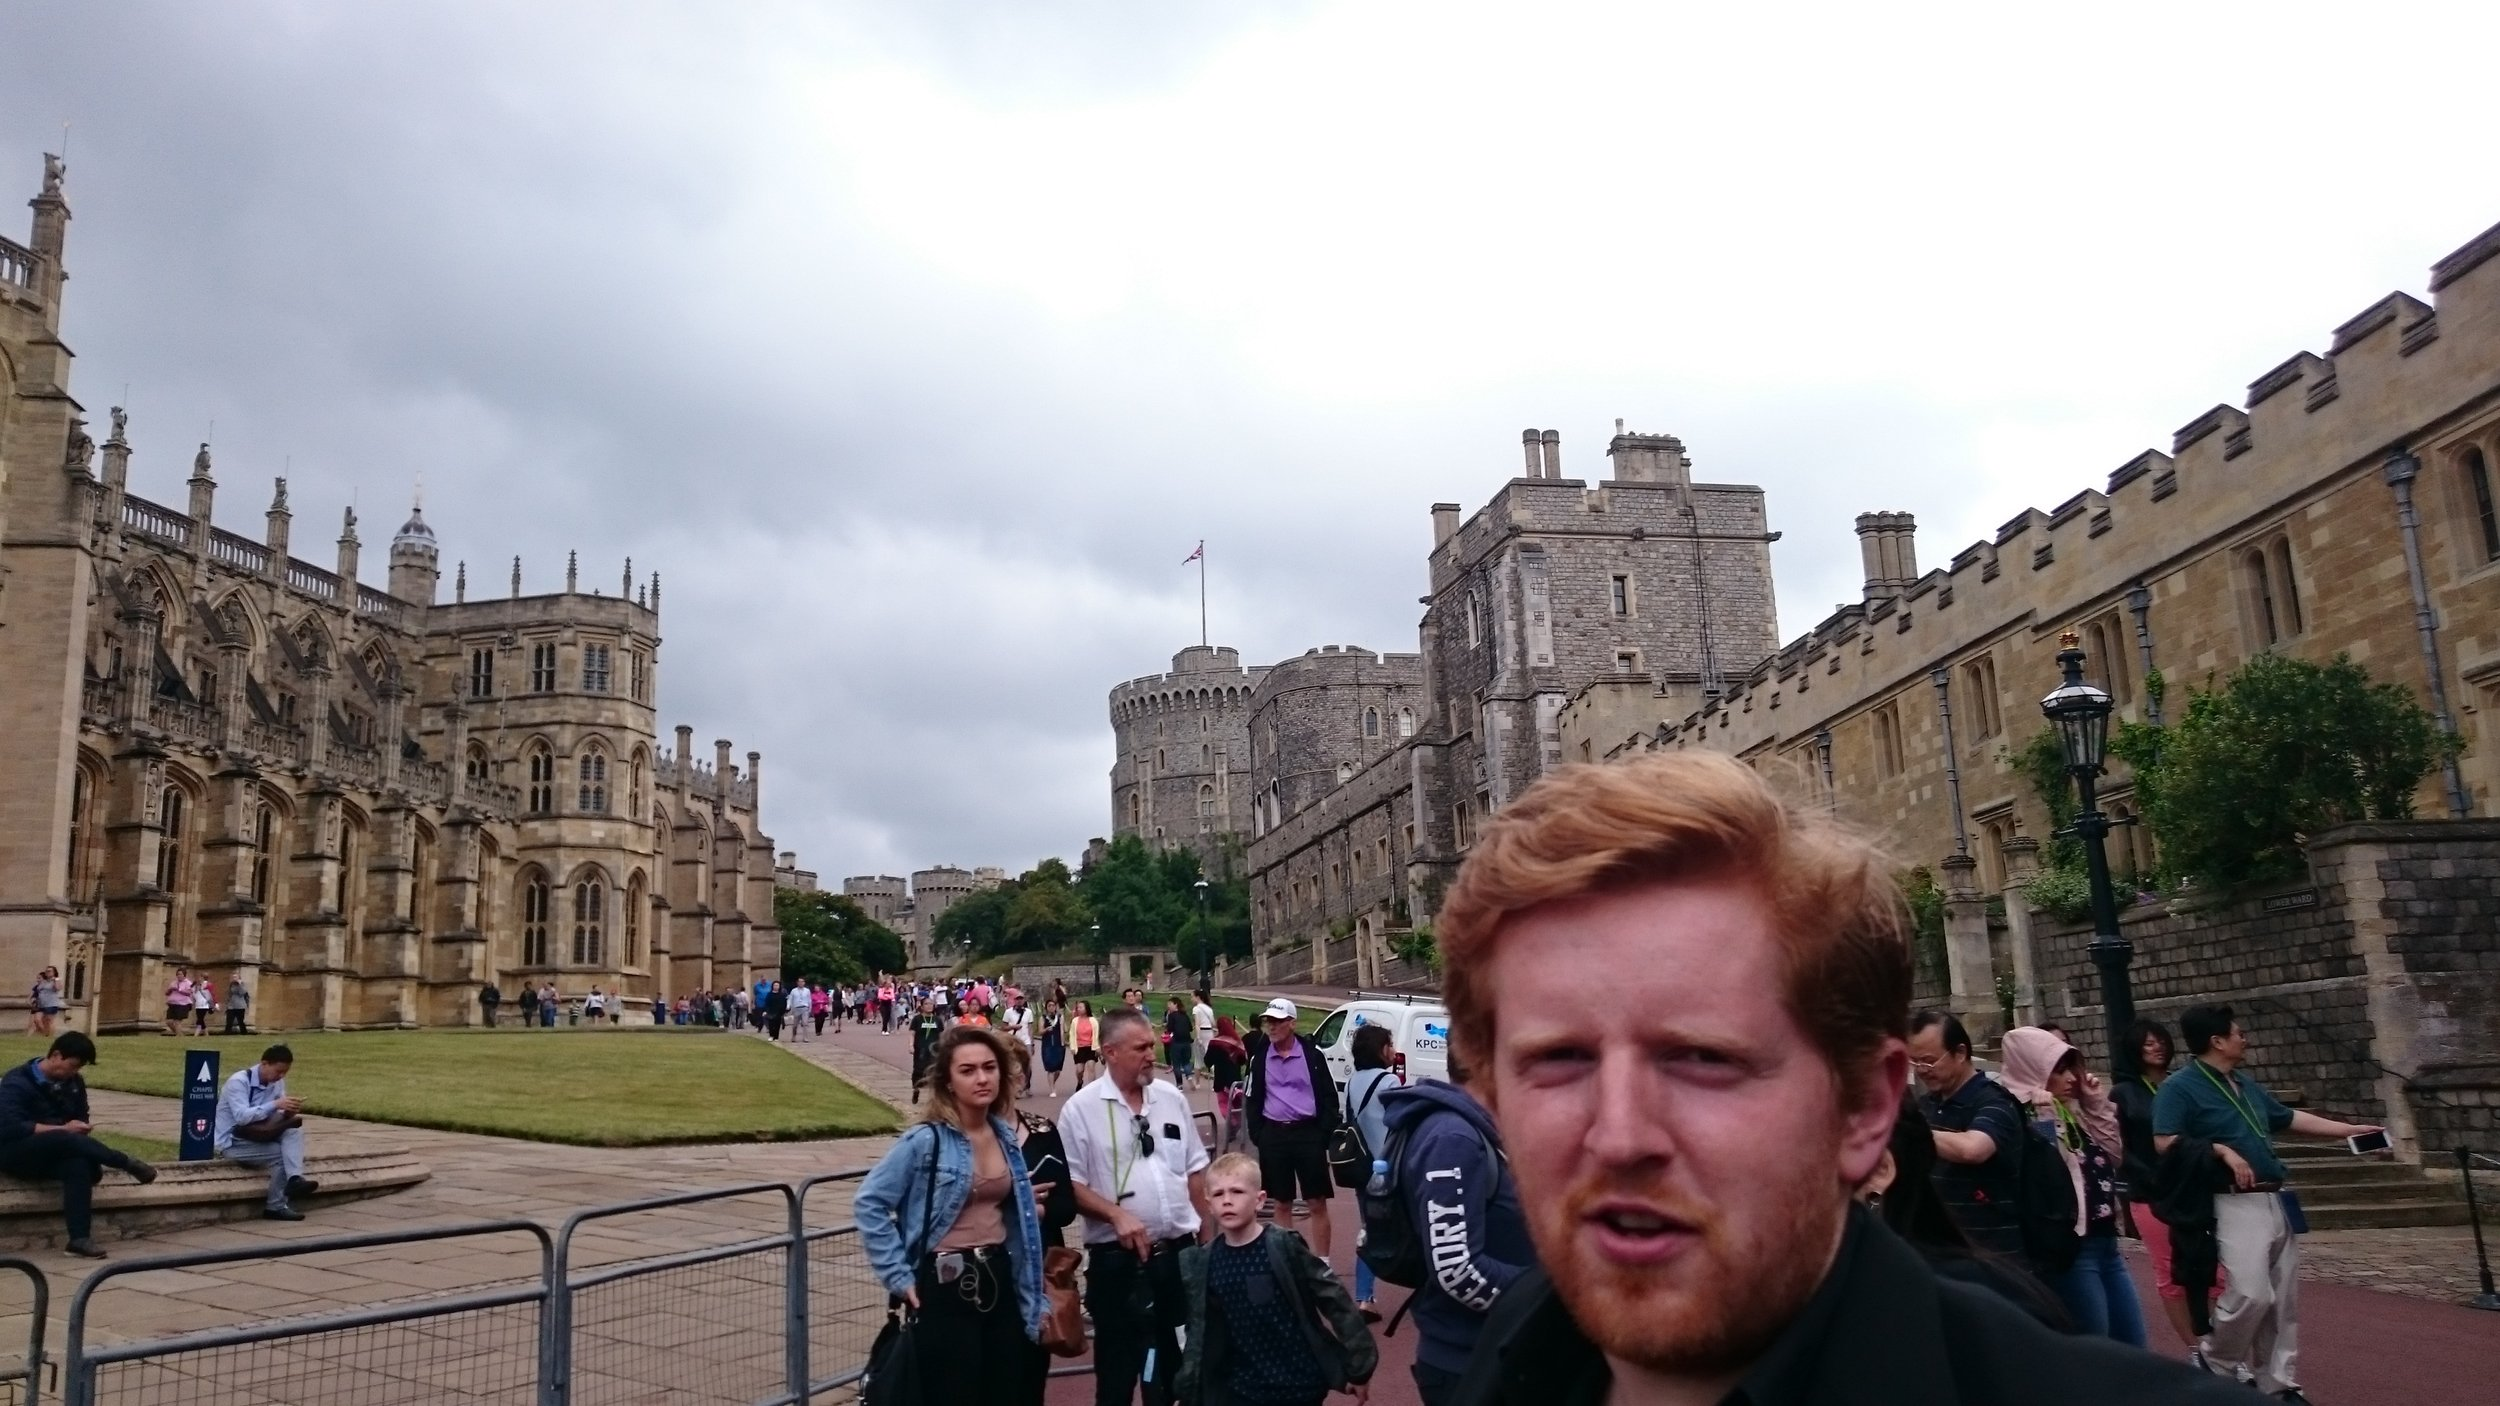 Where Is HM the Queen? (Windsor Castle)